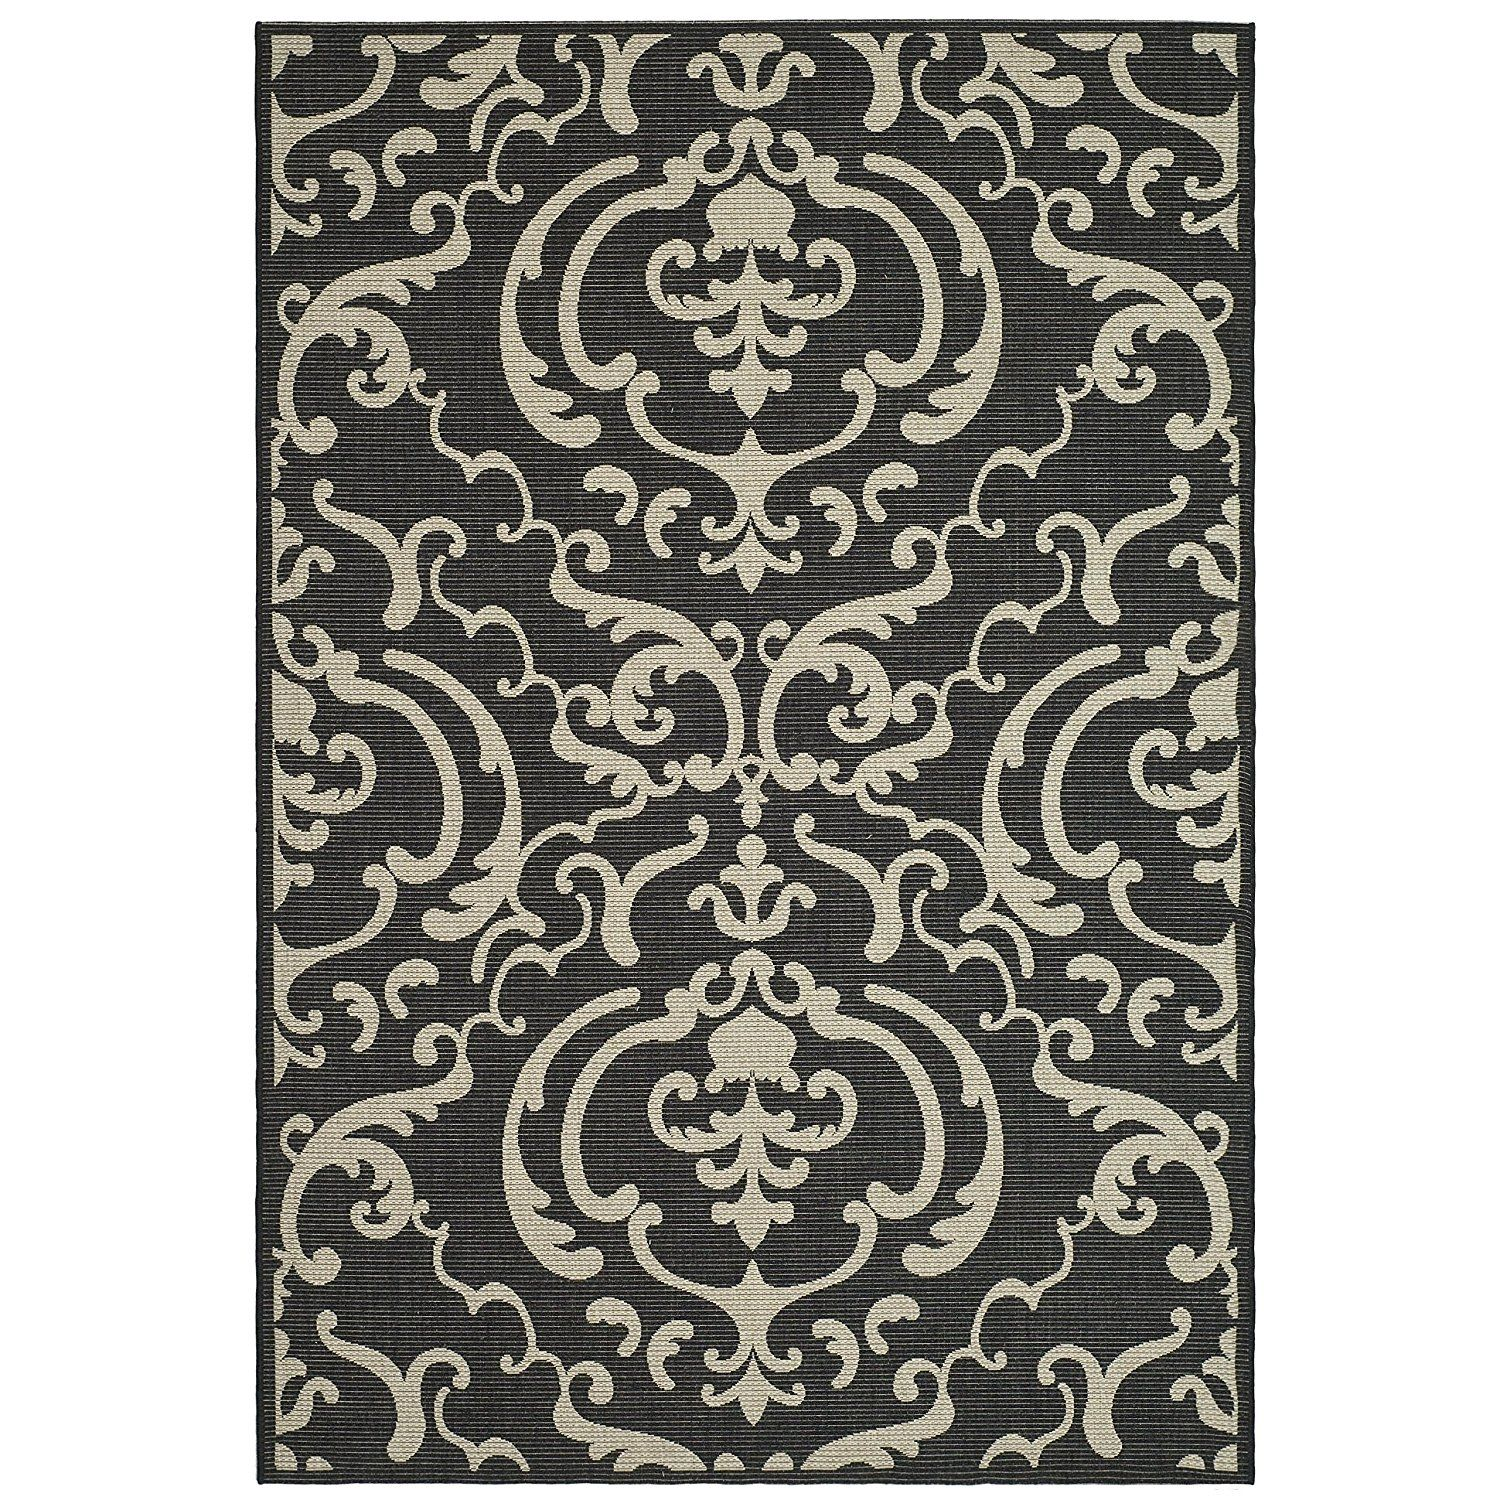 Indoor Outdoor Area Rug 9 X 12 Affiliate Link Inexpensive Rugs Rugs Area Rugs Rugs For Sale Chea Outdoor Rugs Coastal Area Rugs Indoor Outdoor Rugs